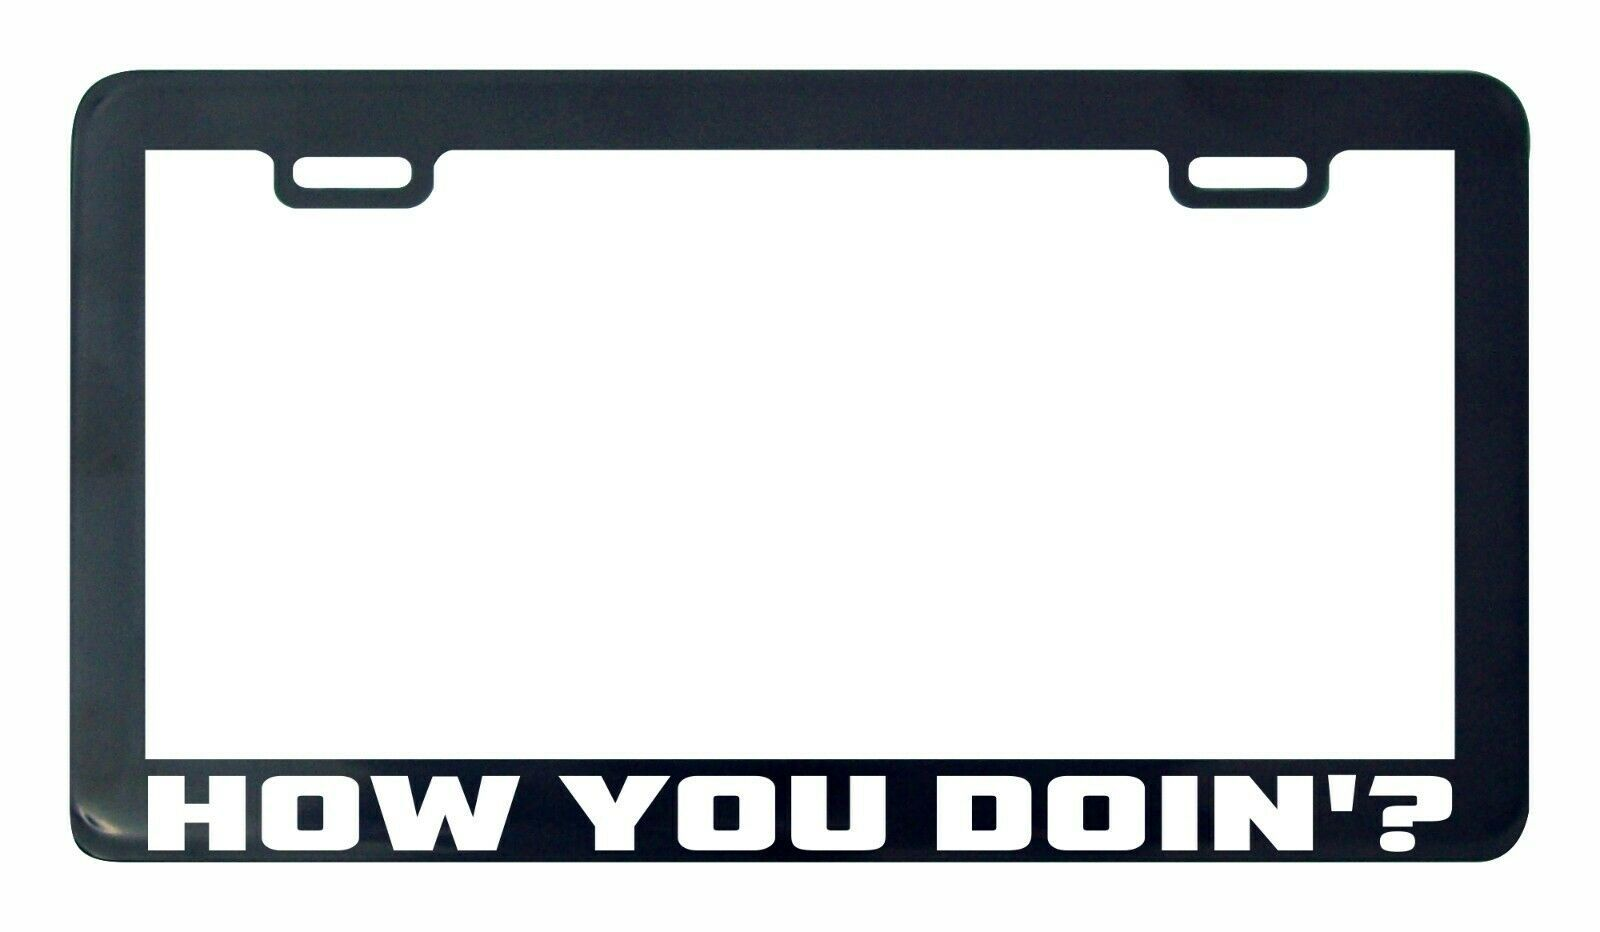 Primary image for How you doin doing funny huimor license plate frame holder tag